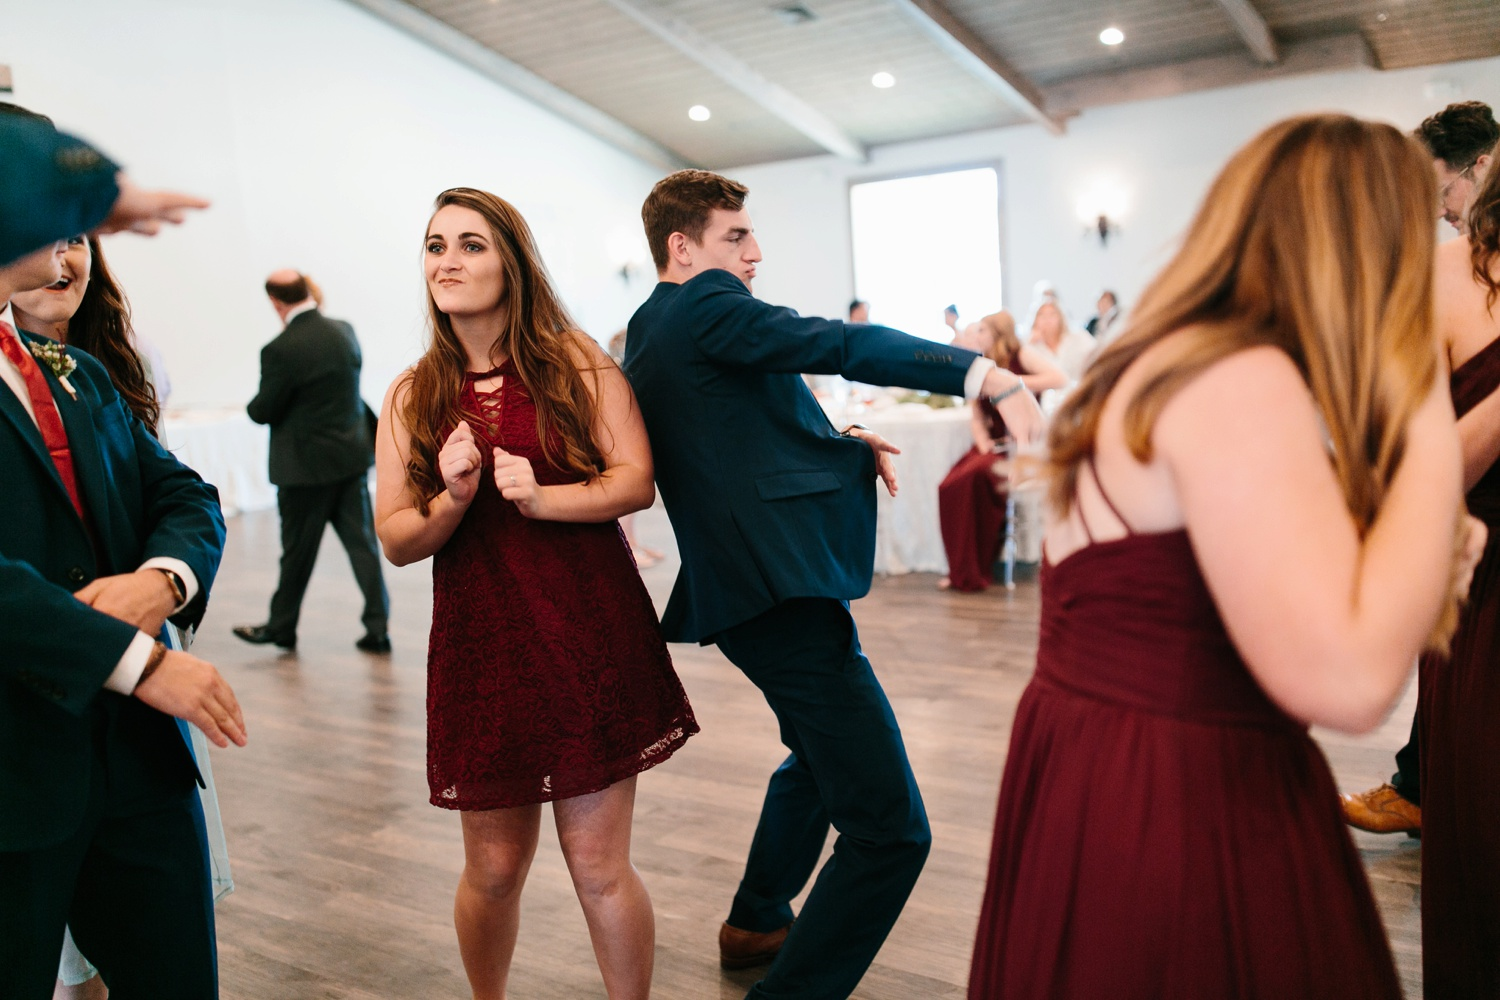 Grant + Lysette | a vibrant, deep burgundy and navy, and mixed metals wedding at Hidden Pines Chapel by North Texas Wedding Photographer Rachel Meagan Photography 162